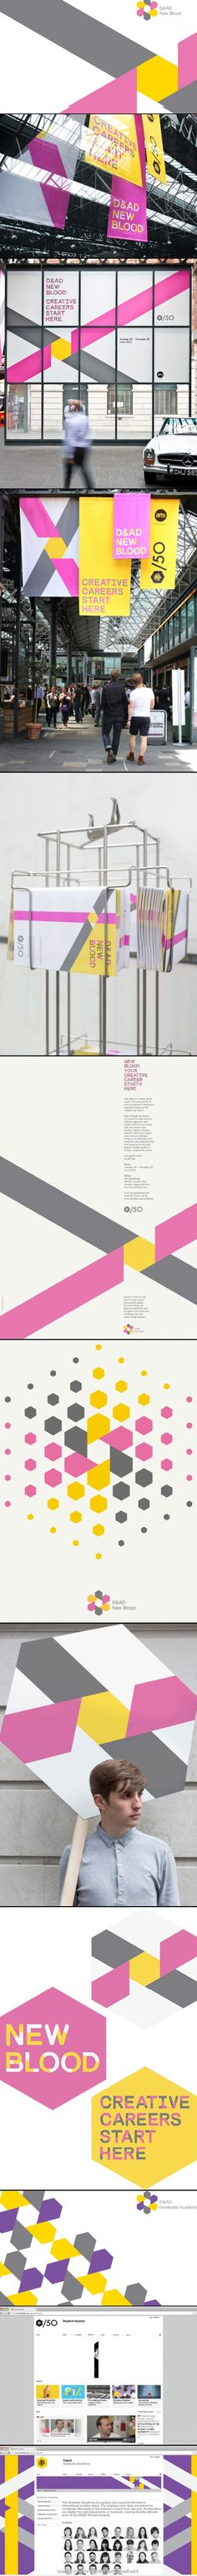 Identity / d&ad ihnynotes: color pops